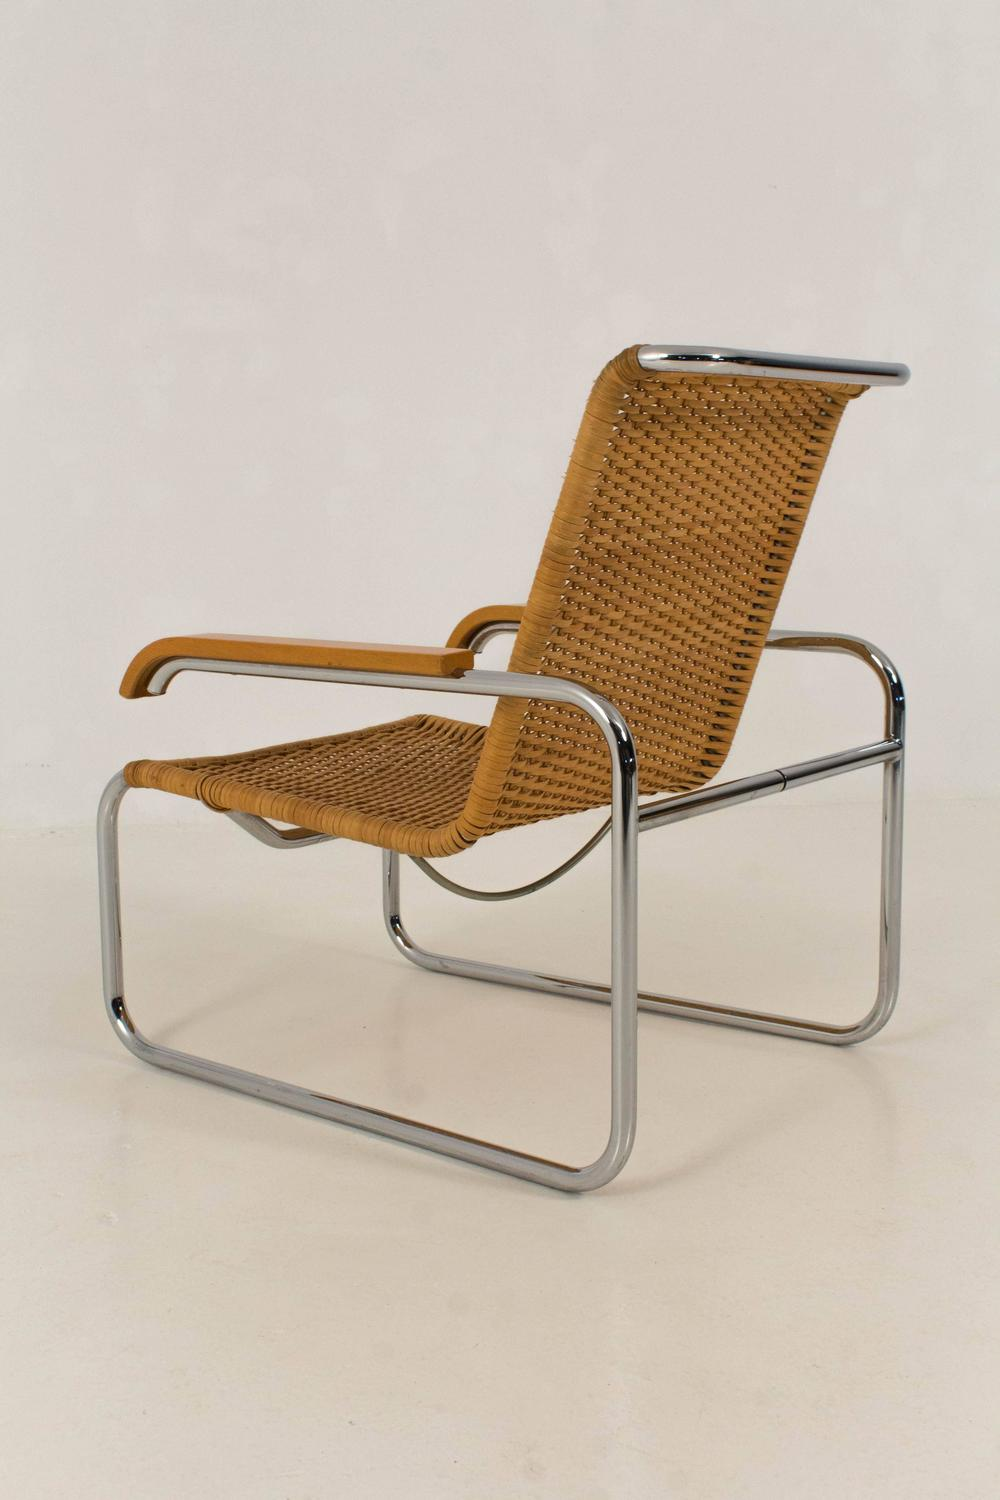 b 35 lounge chair by marcel breuer for thonet 1970s for sale at 1stdibs. Black Bedroom Furniture Sets. Home Design Ideas